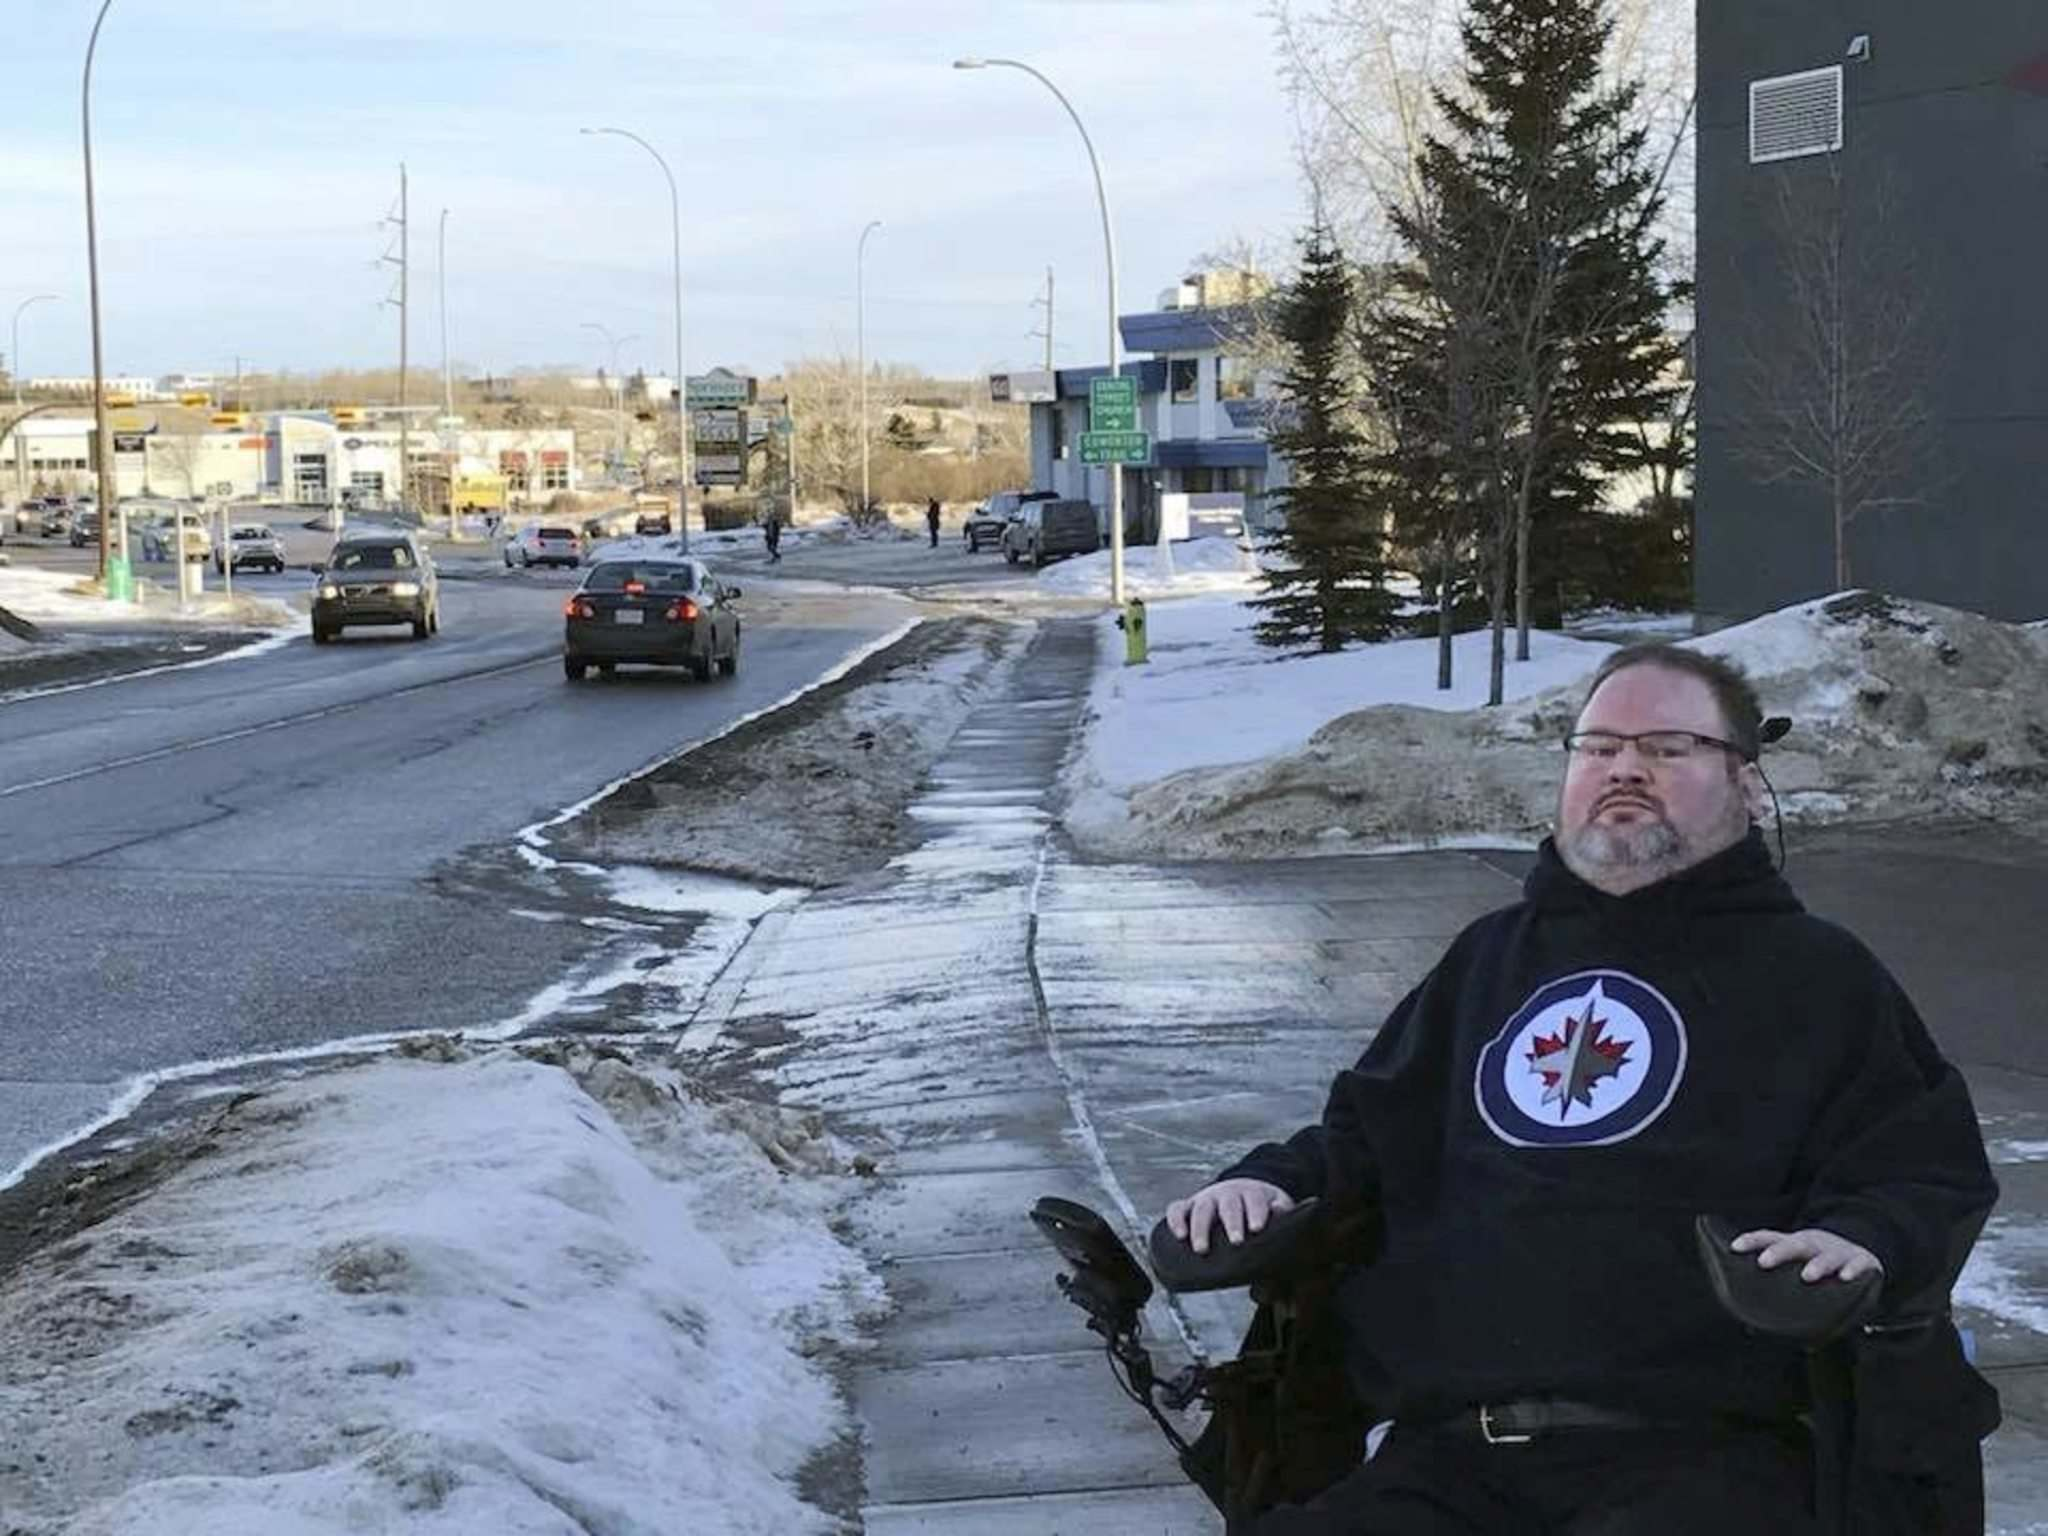 FACEBOOK</p><p>Fletcher visited the Fresh Start centre in Calgary, and said in a Facebook video its location is 'more like an industrial park.'</p></p>